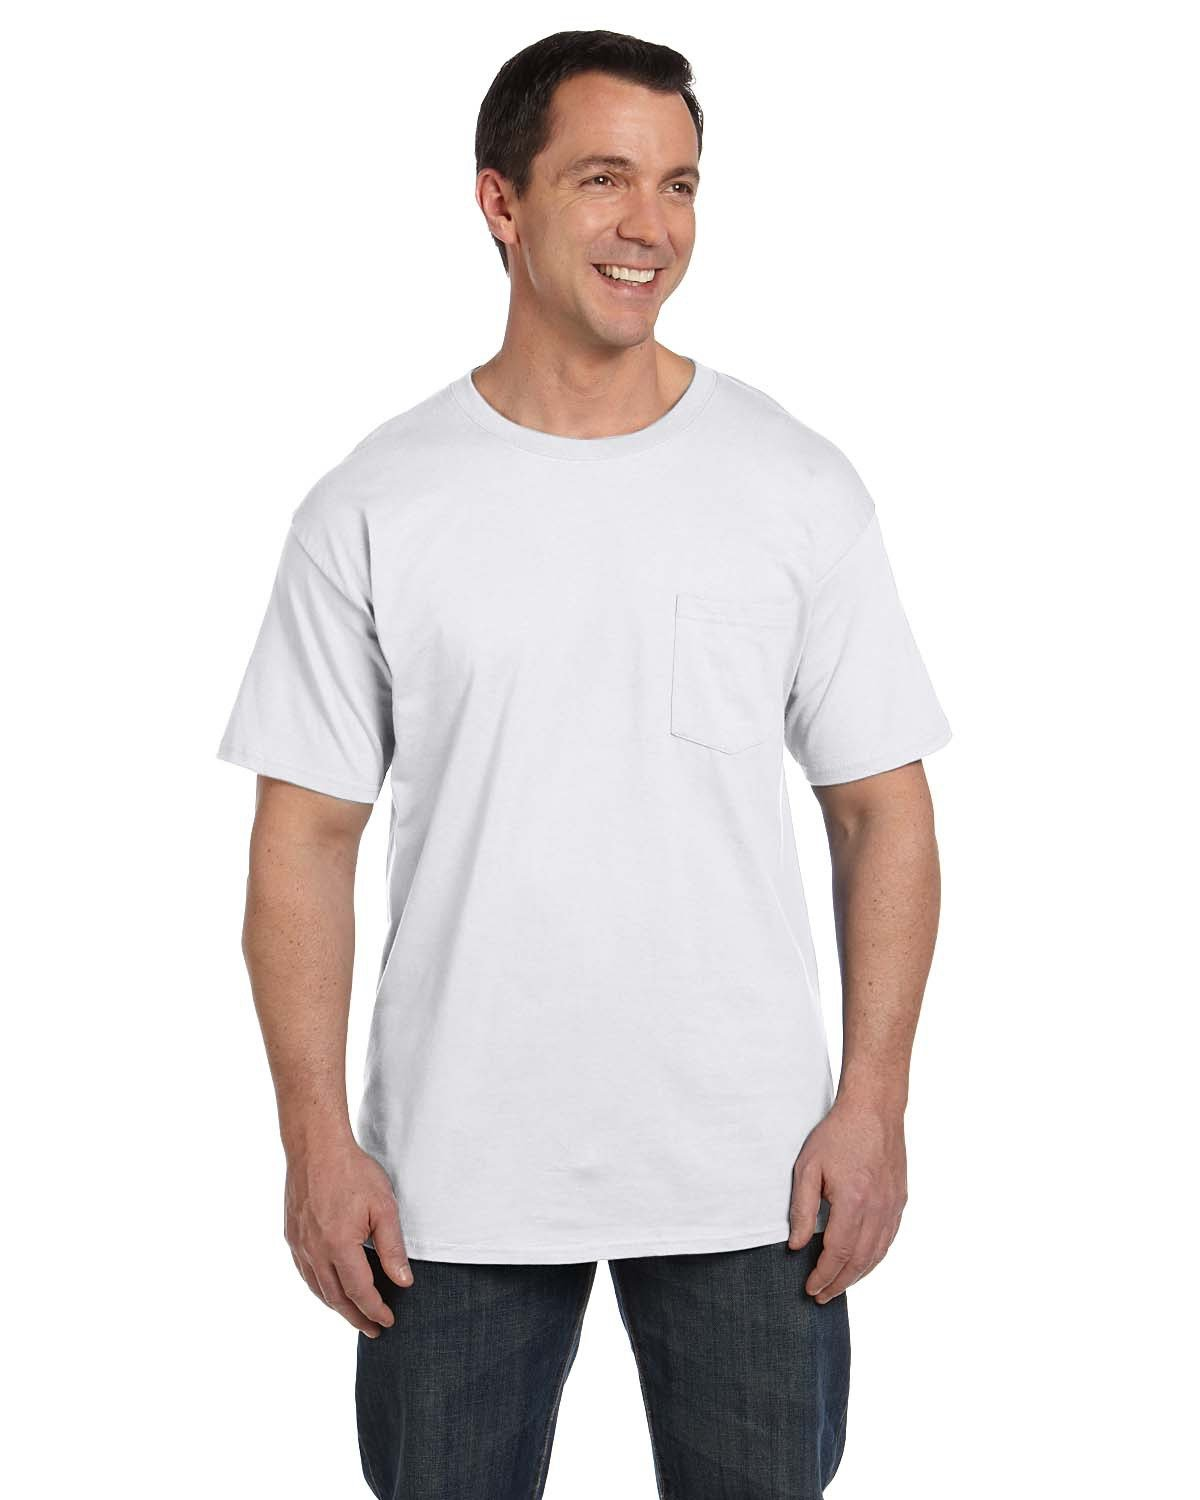 Hanes Adult Beefy-T® with Pocket WHITE